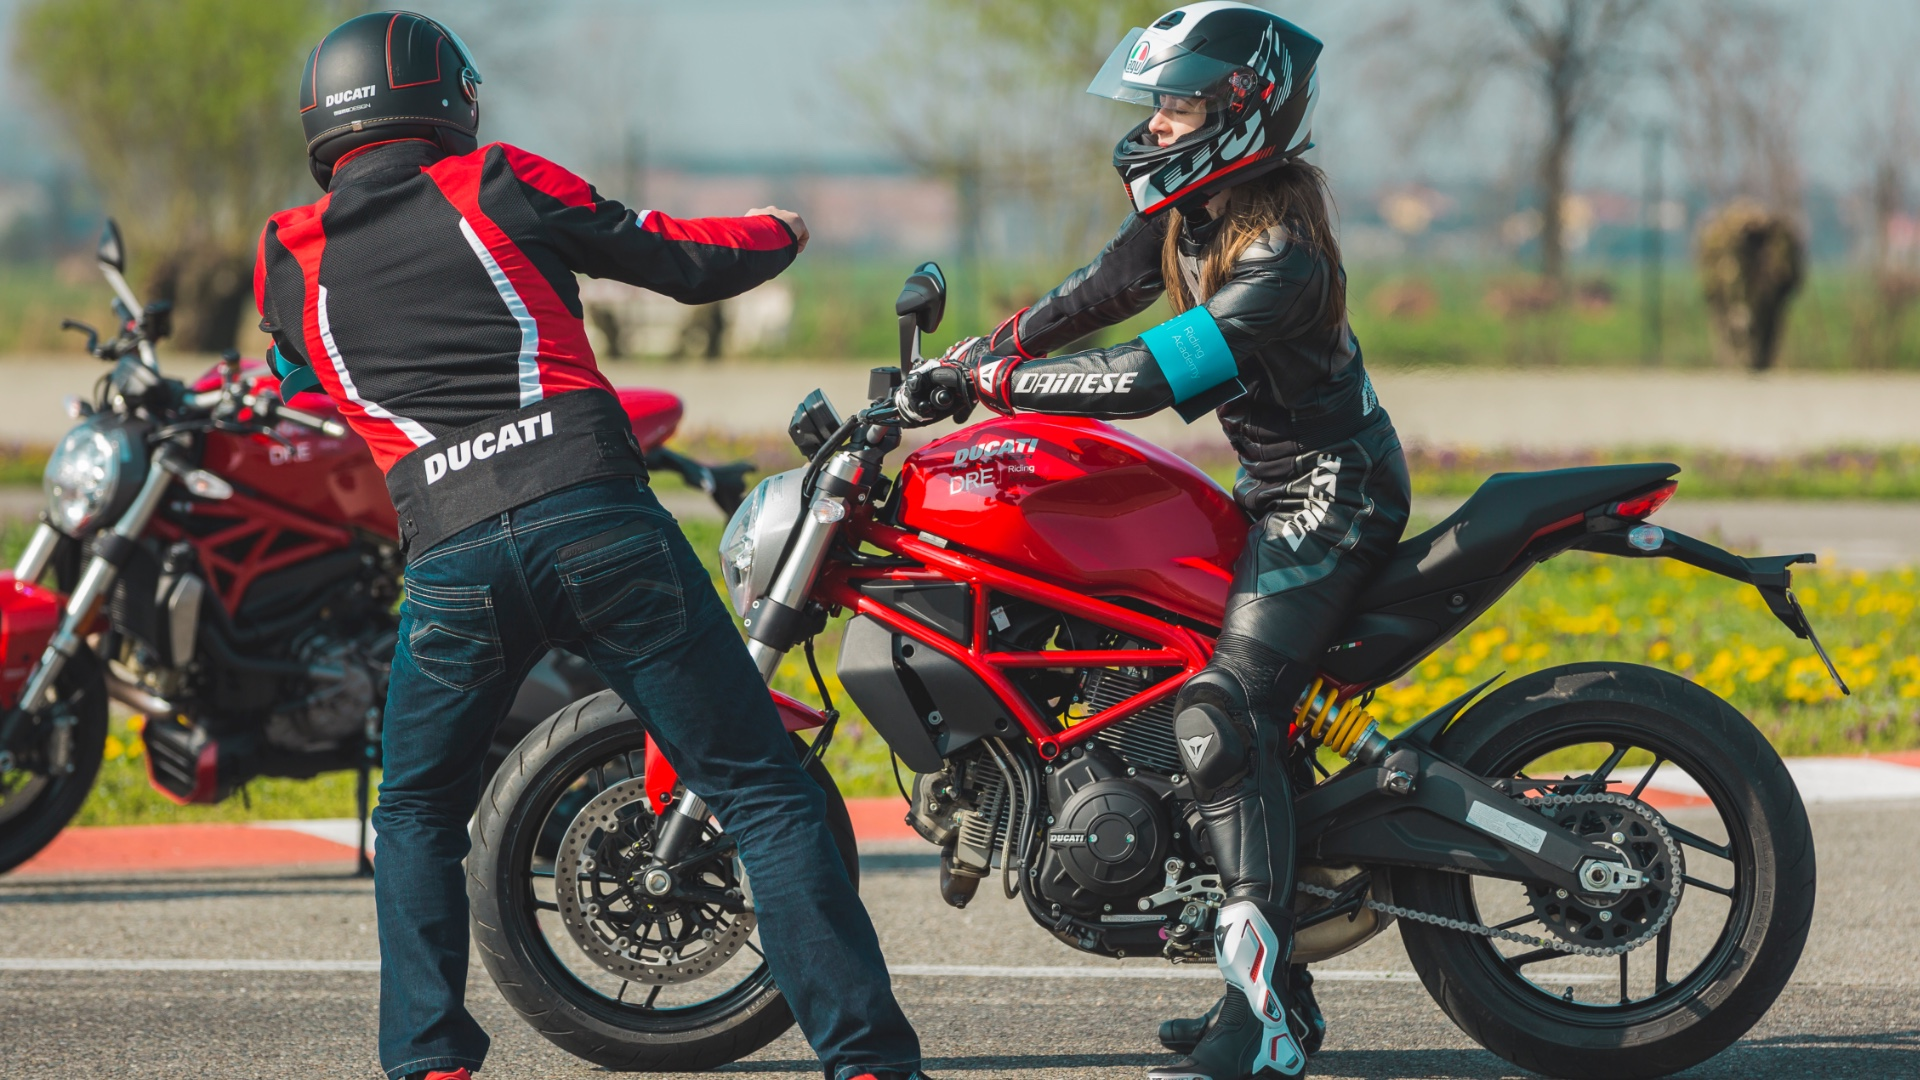 Ducati Riding Experience - Road Academy 2019